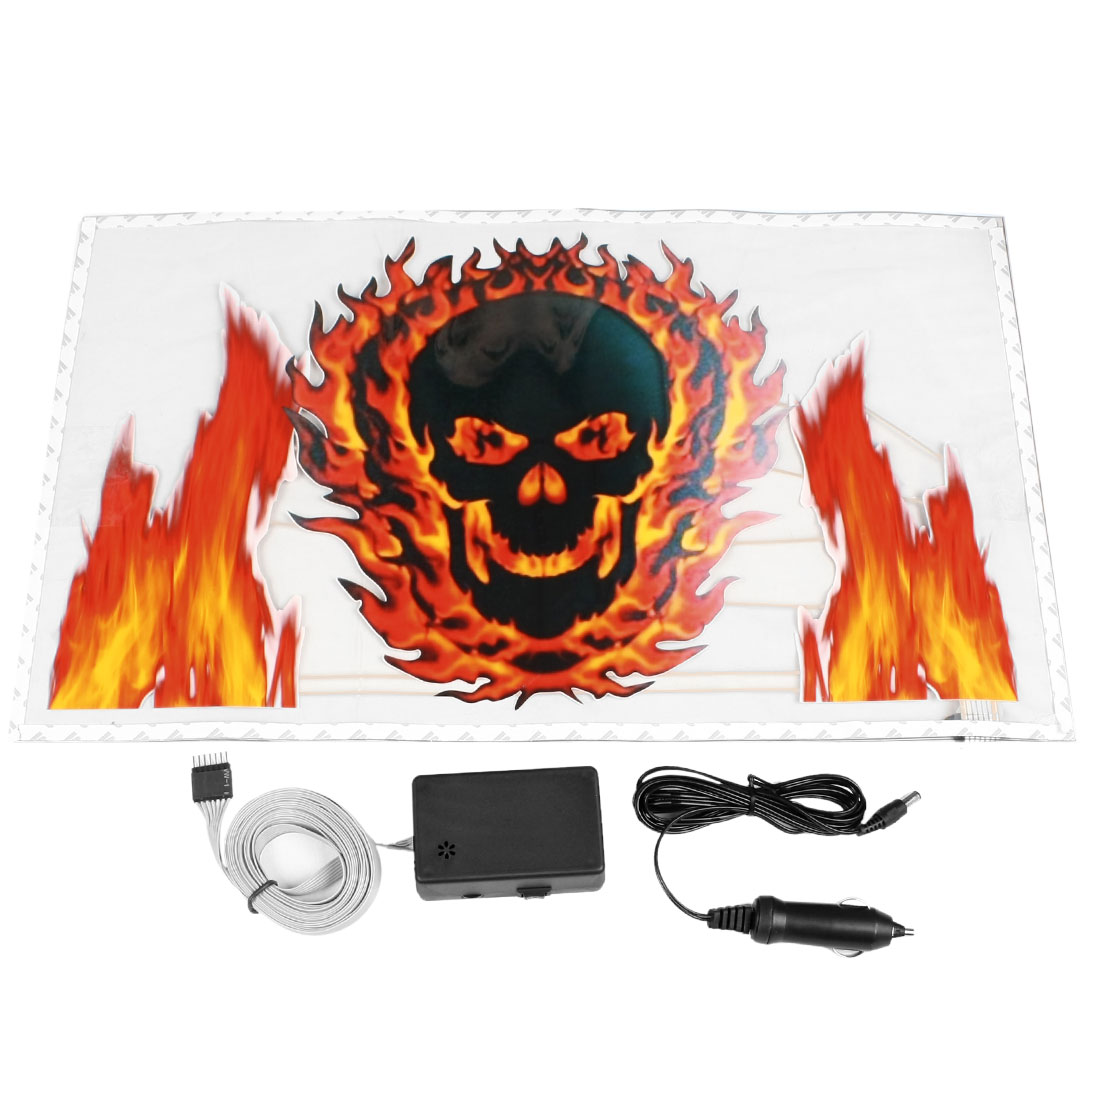 Car Flame Skull Print Sound Music Activated Equalizer Multicolor Flash Light